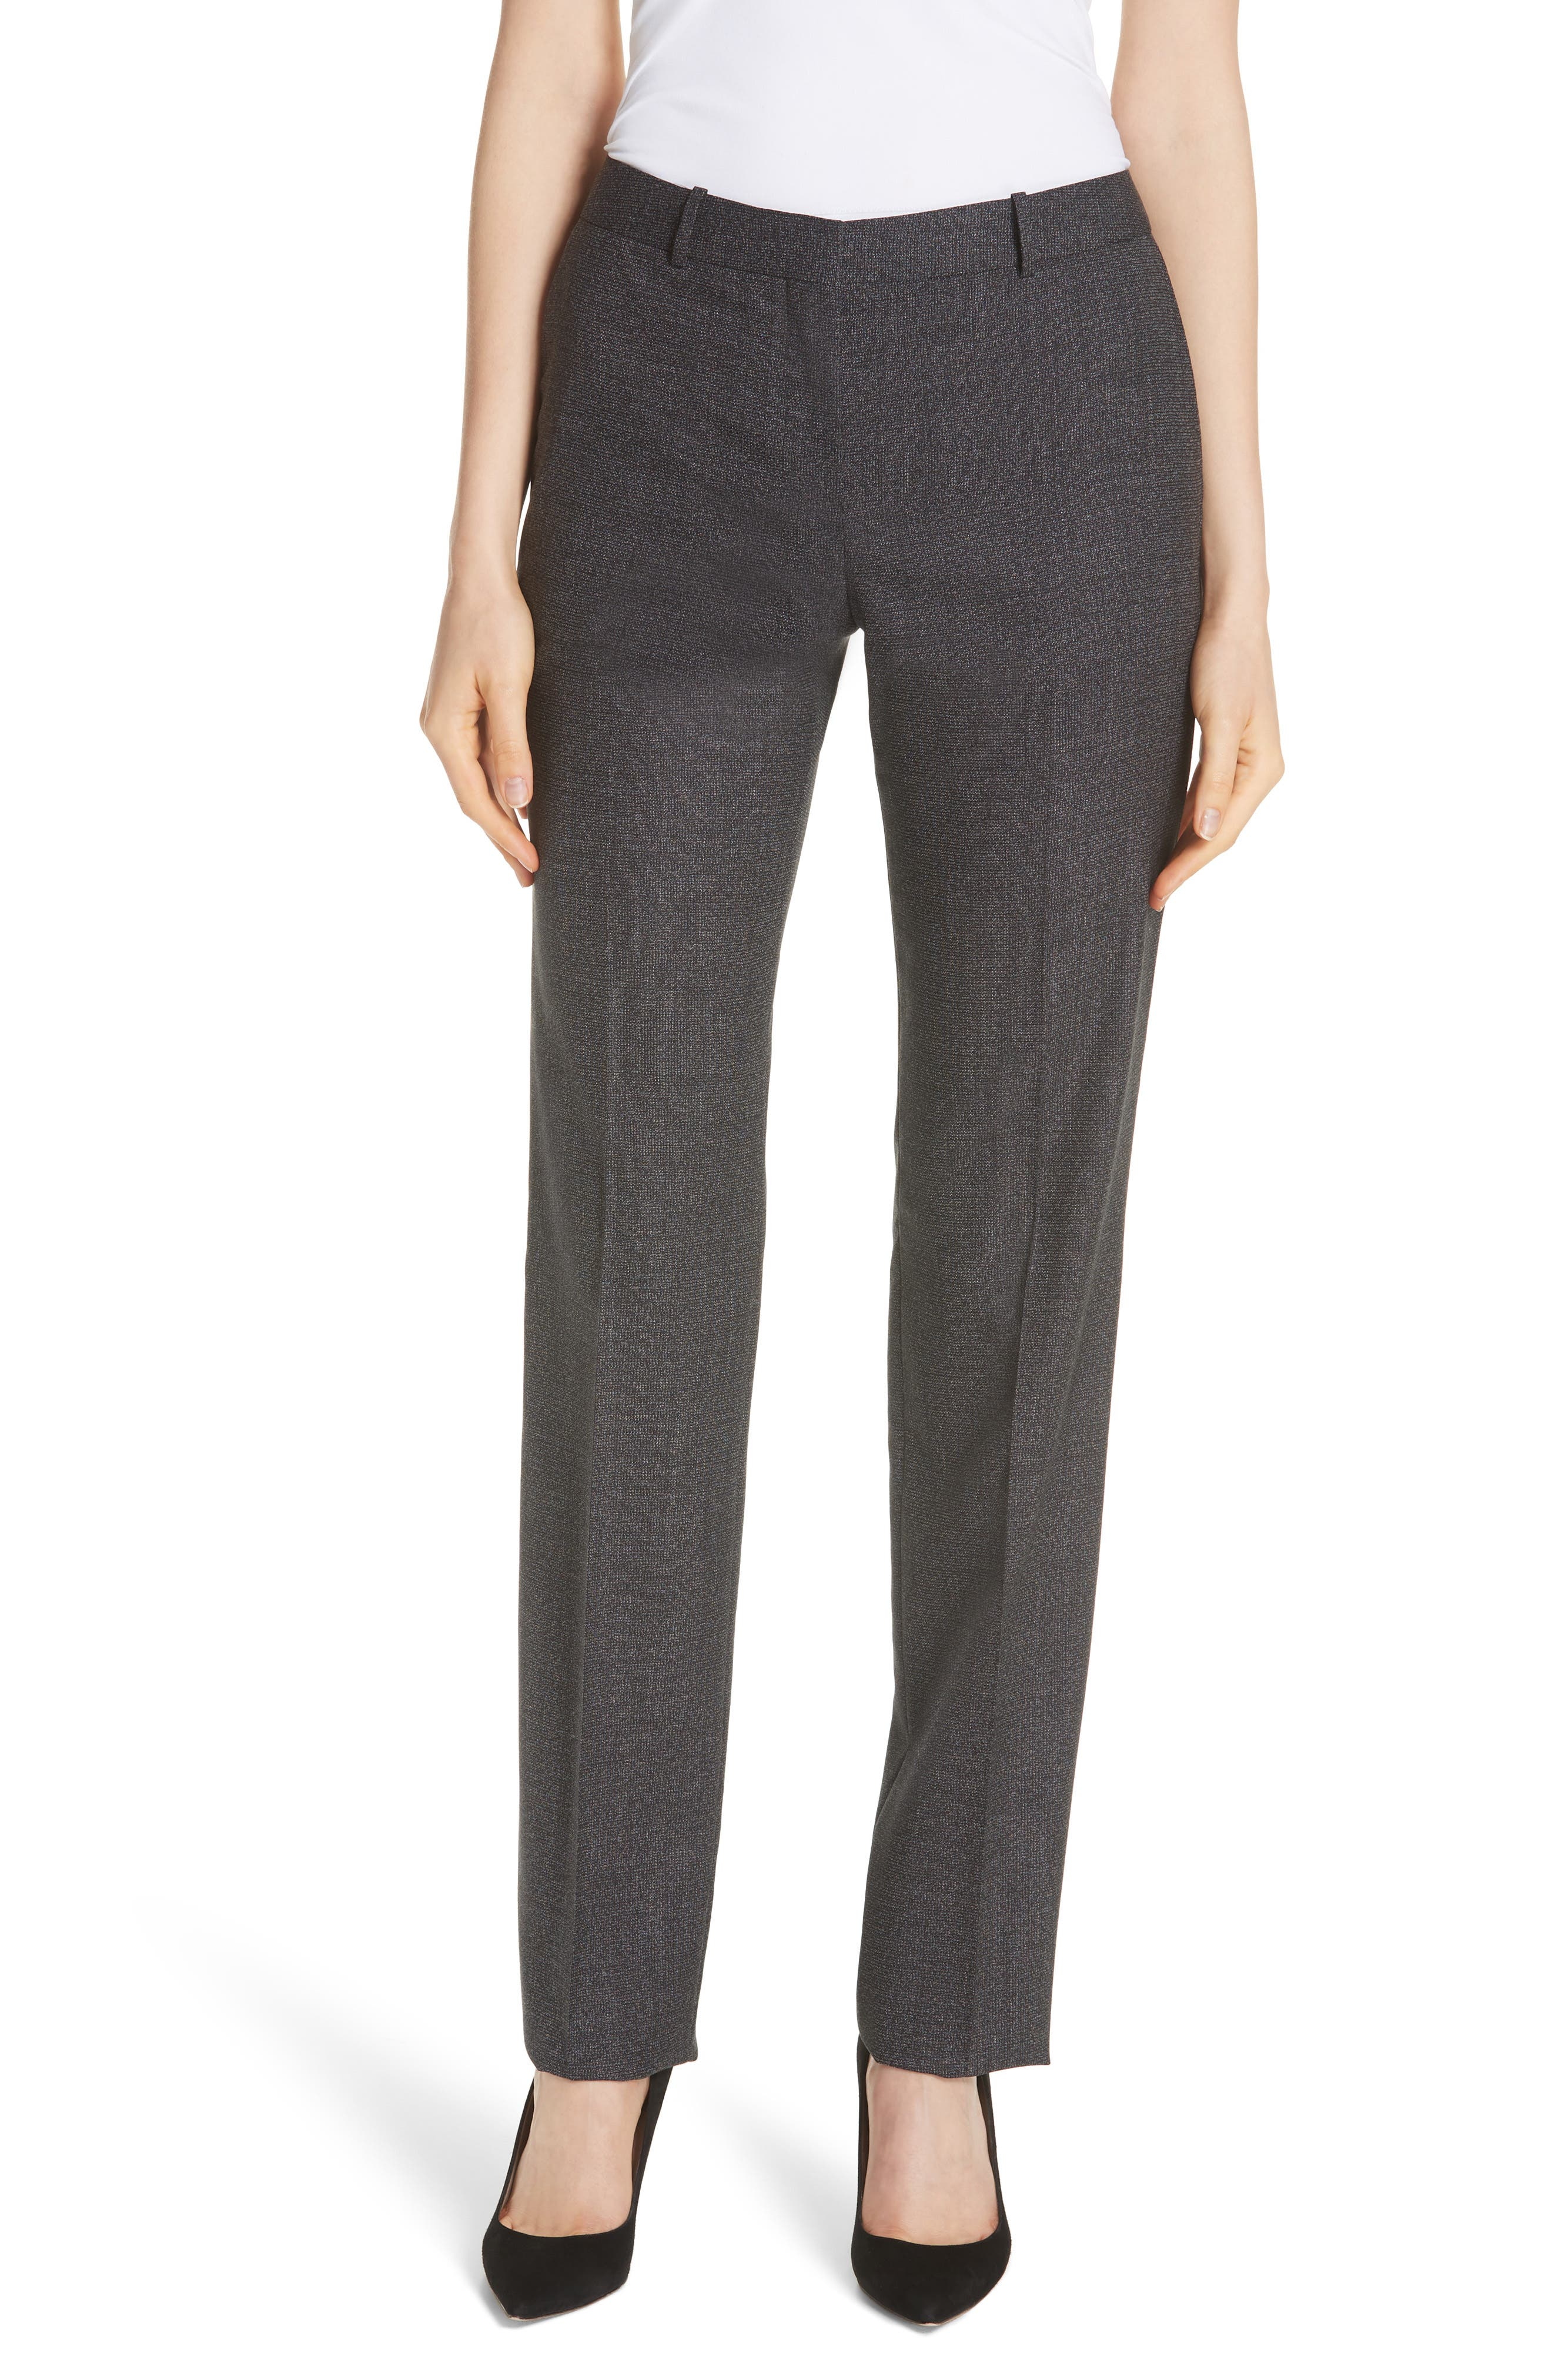 Tamea Tropical Stretch Wool Trousers,                         Main,                         color, Black Fantasy